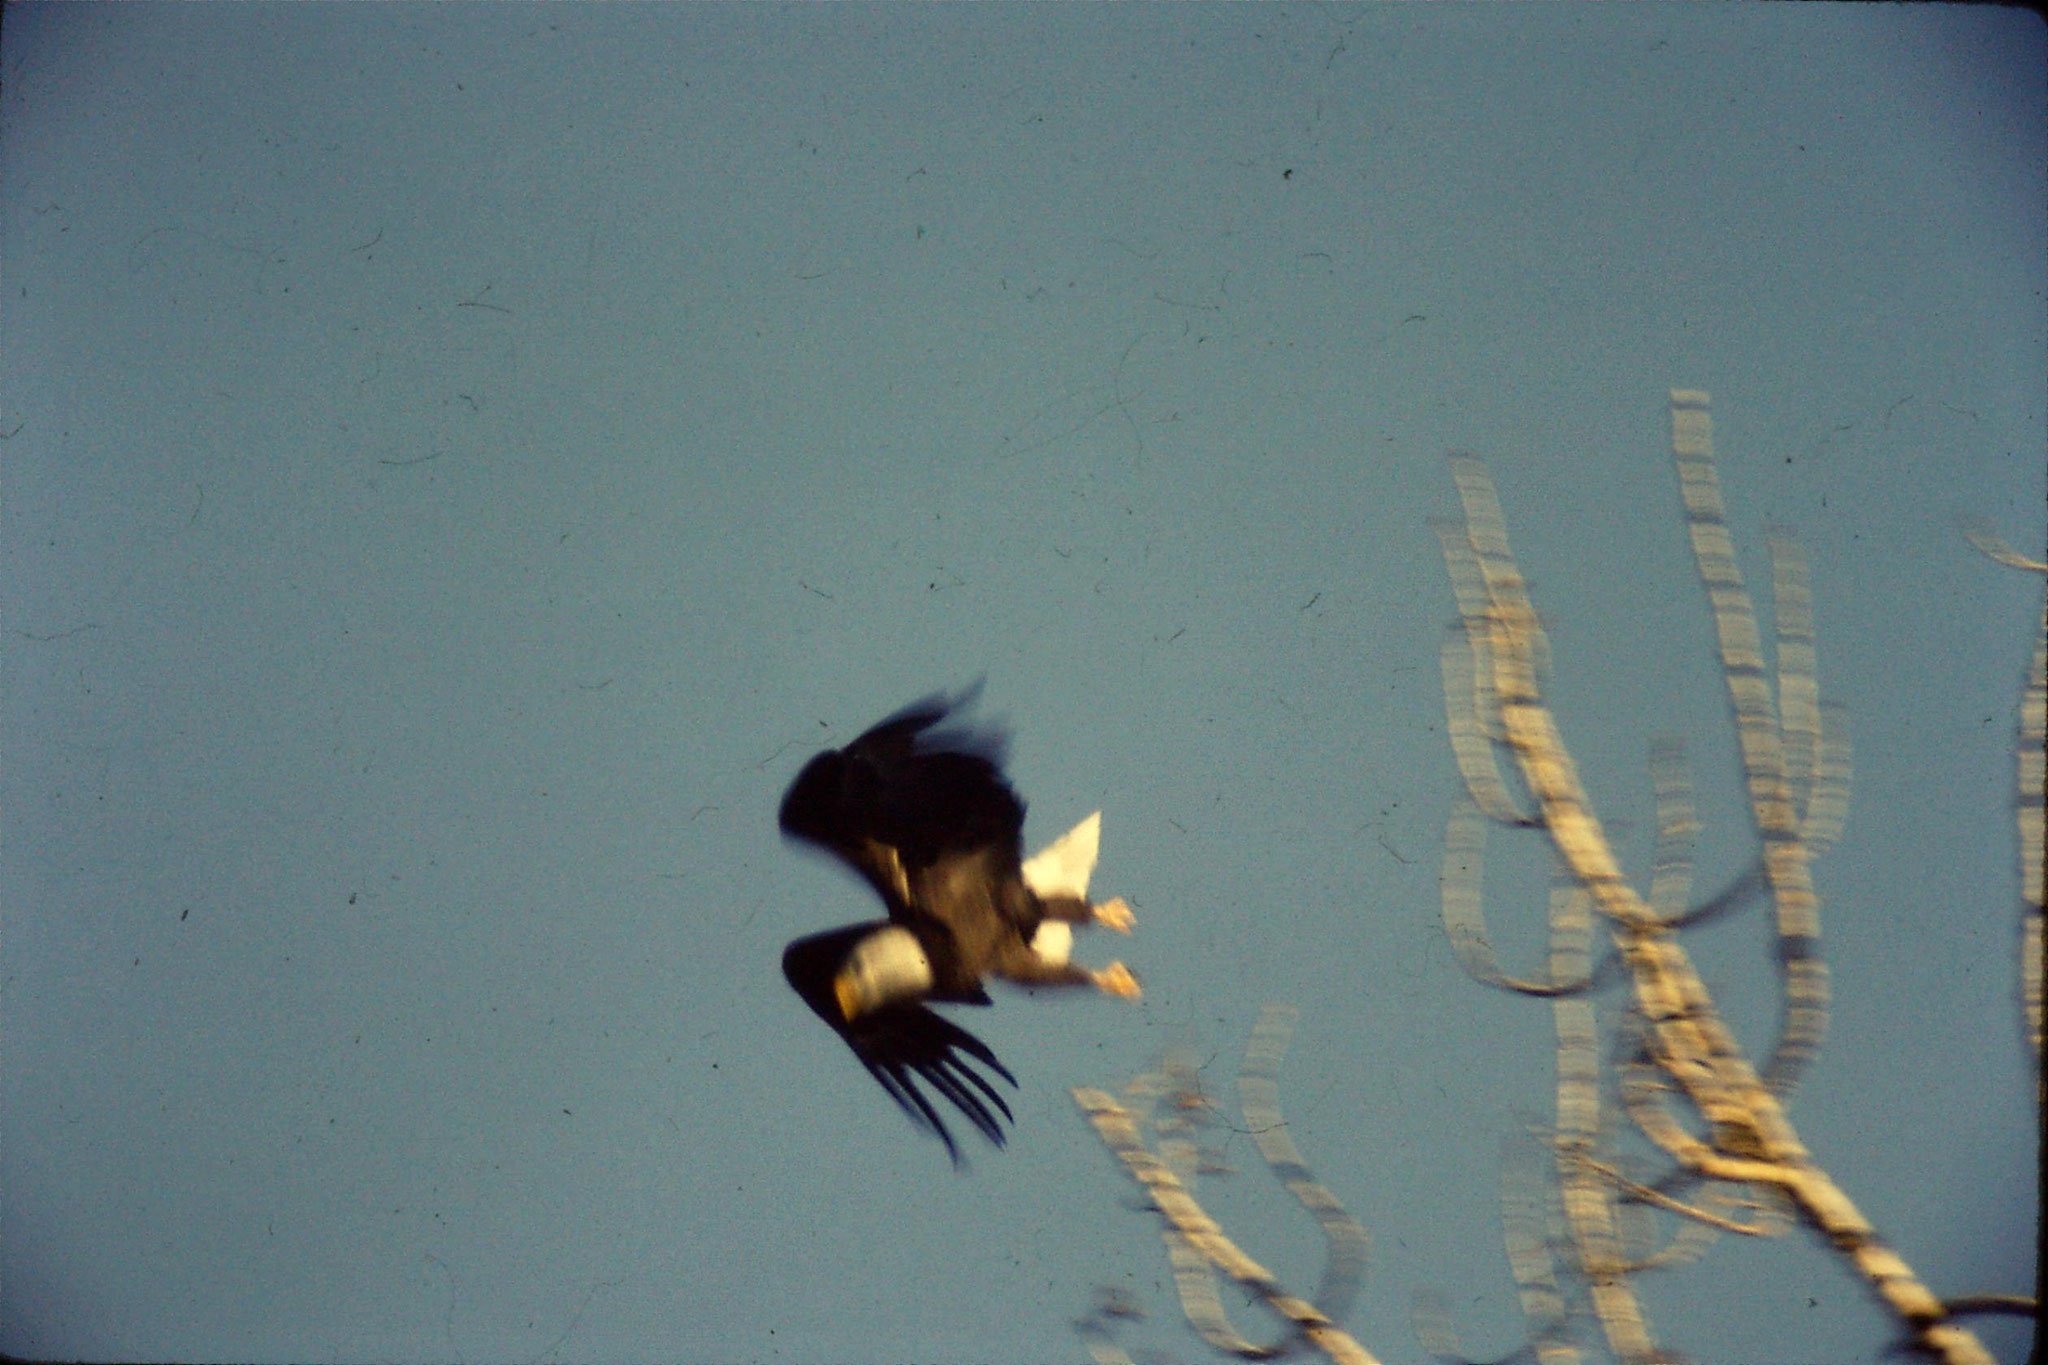 23/1/1991: 21: bald eagles